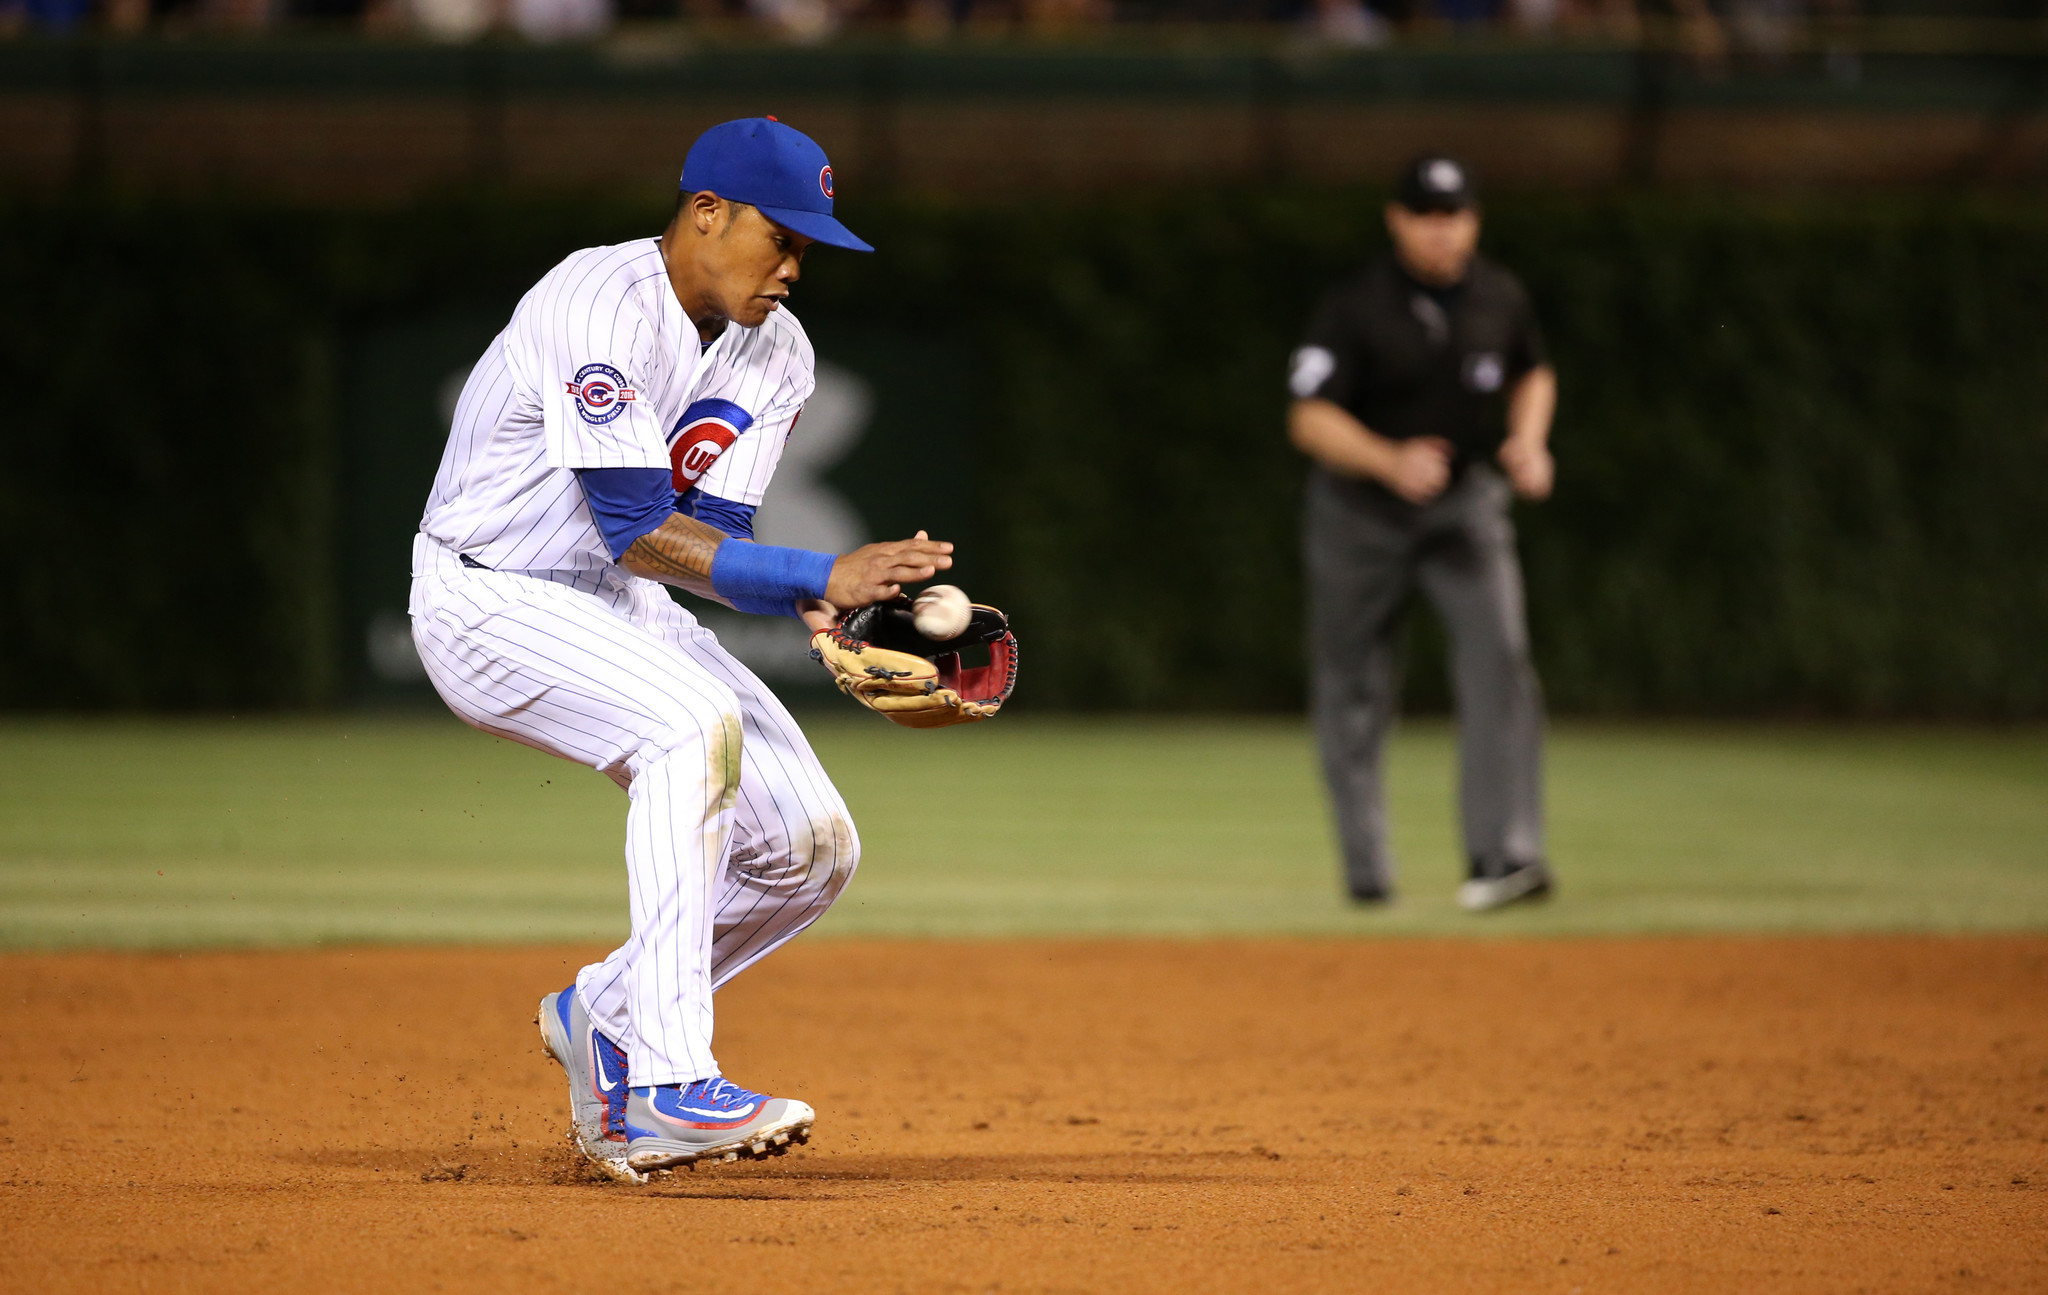 Ct-addison-russell-gold-glove-bits-cubs-spt-0824-20160823